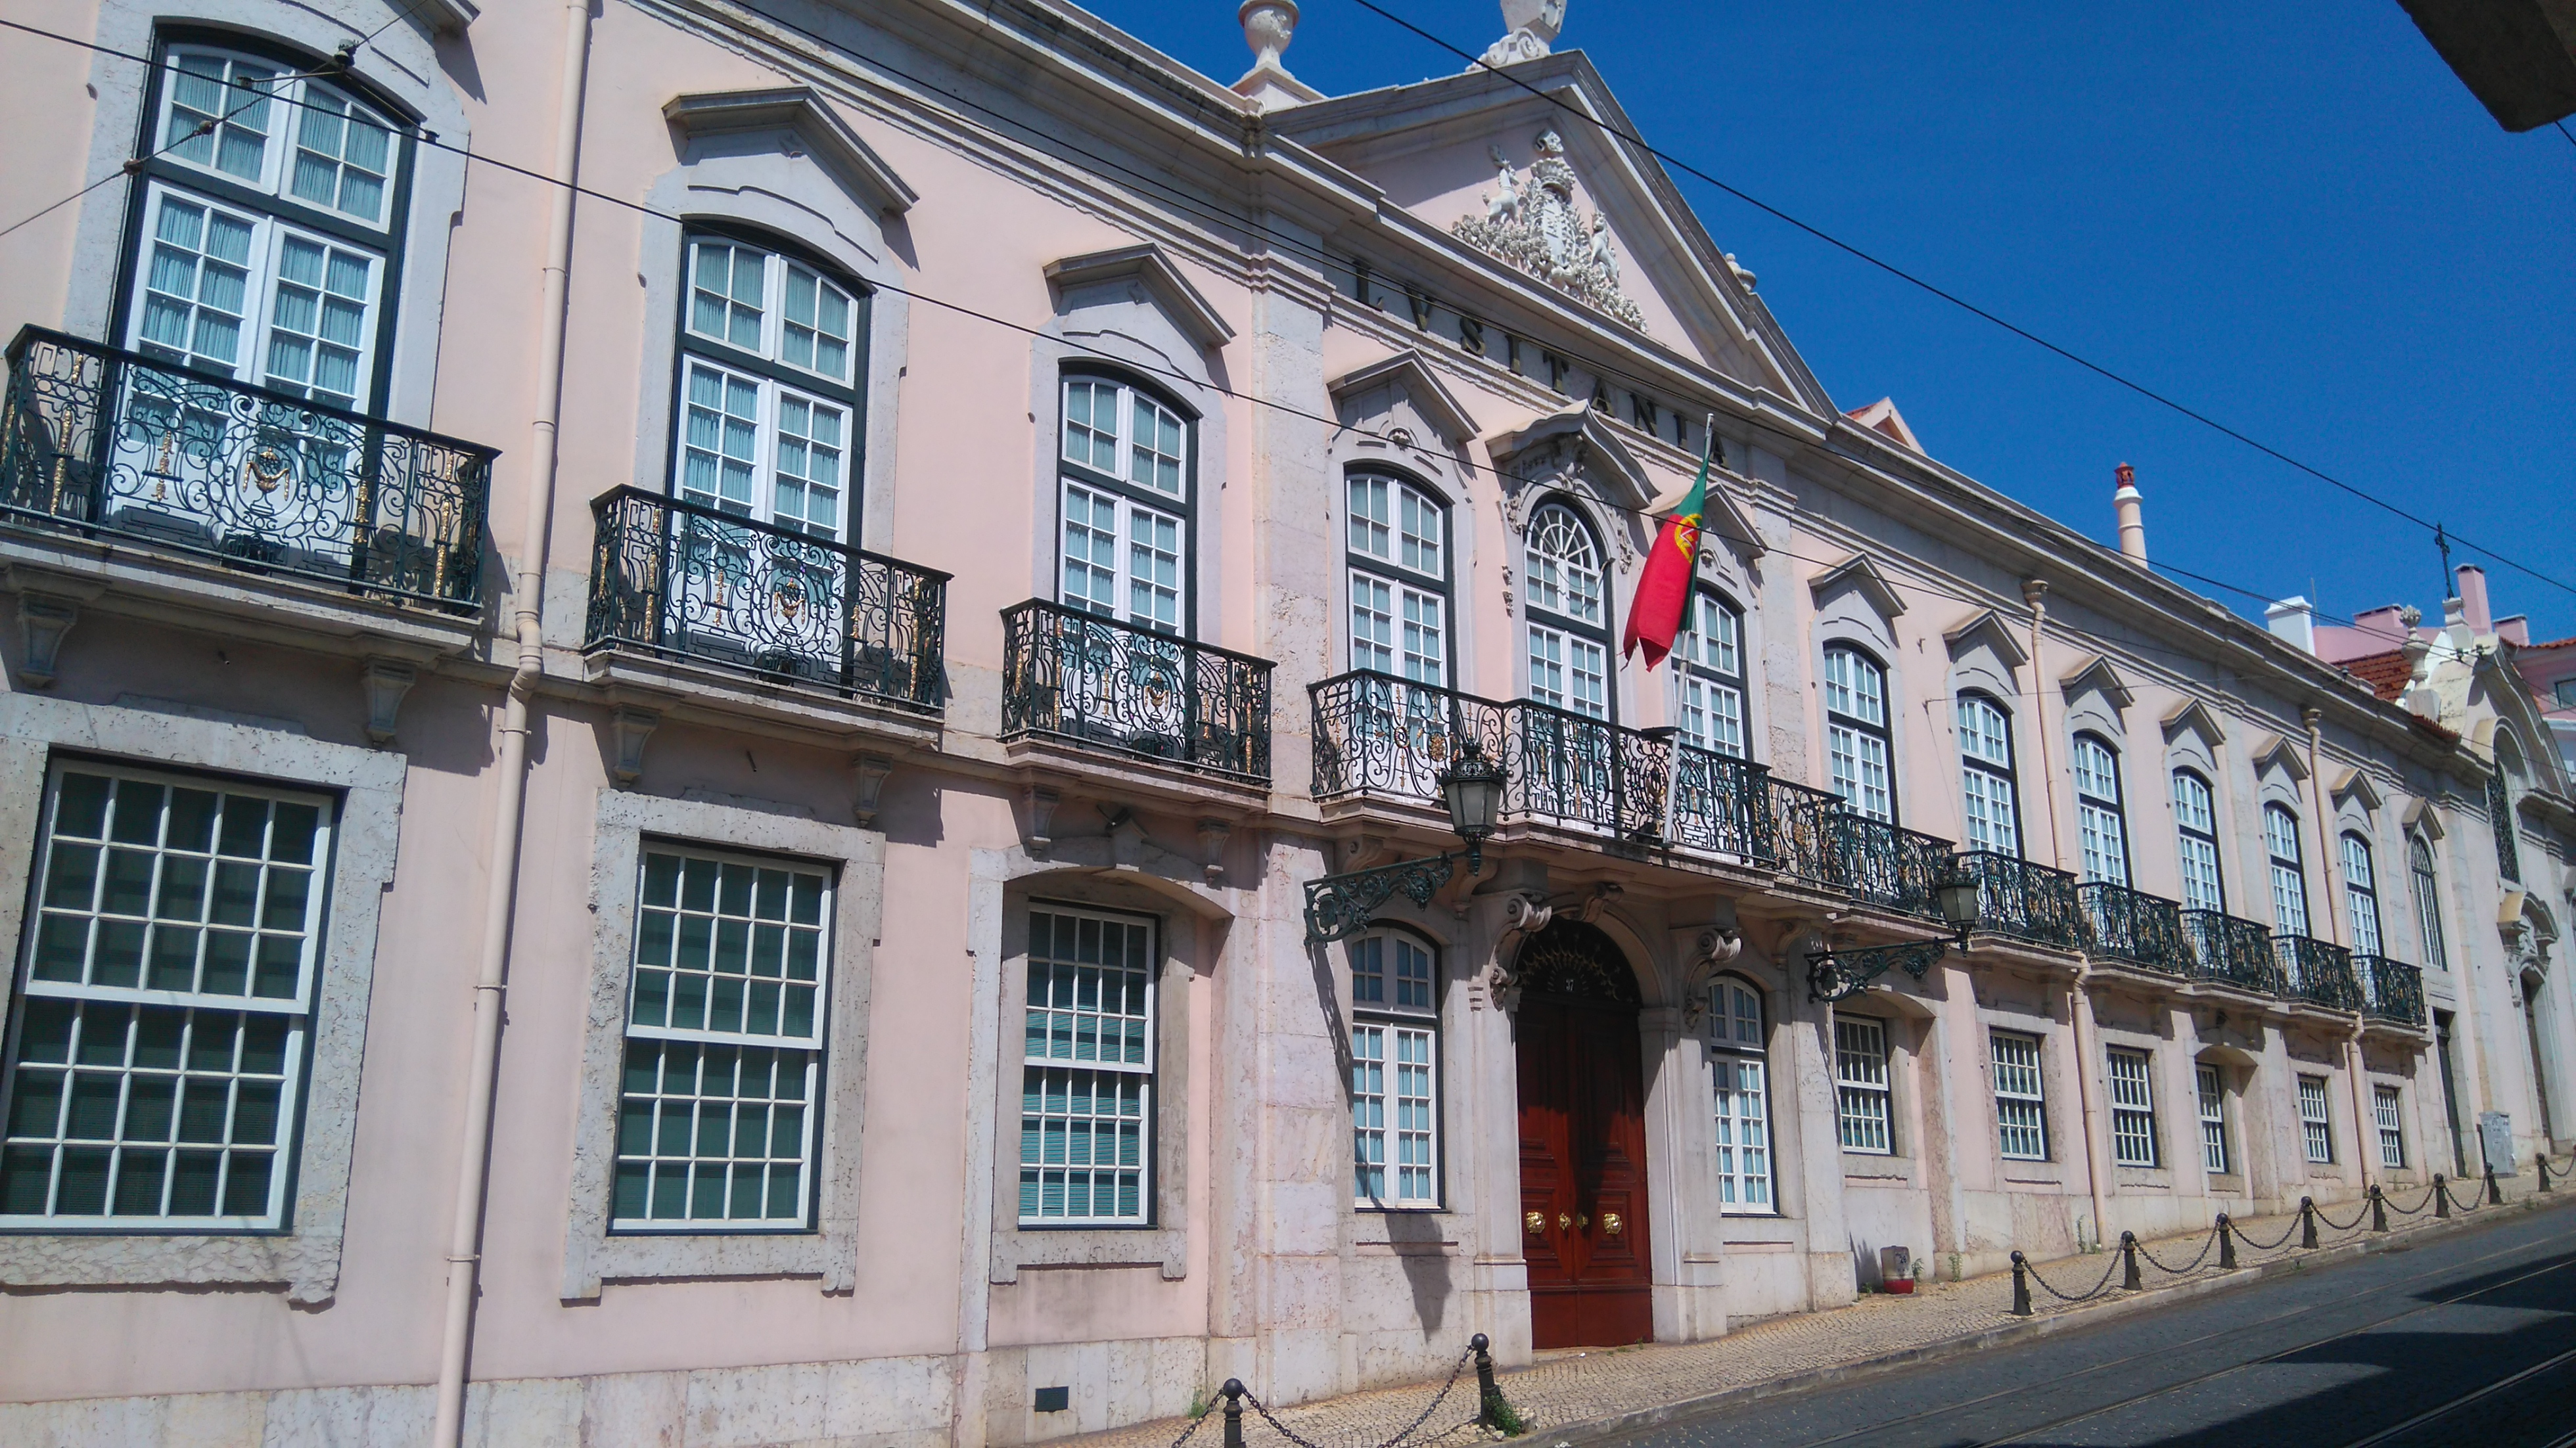 After 55 years, the British Embassy moved its premises from the Palácio de Porto Covo, Rua São Domingos à Lapa, to Rua São Bernardo.